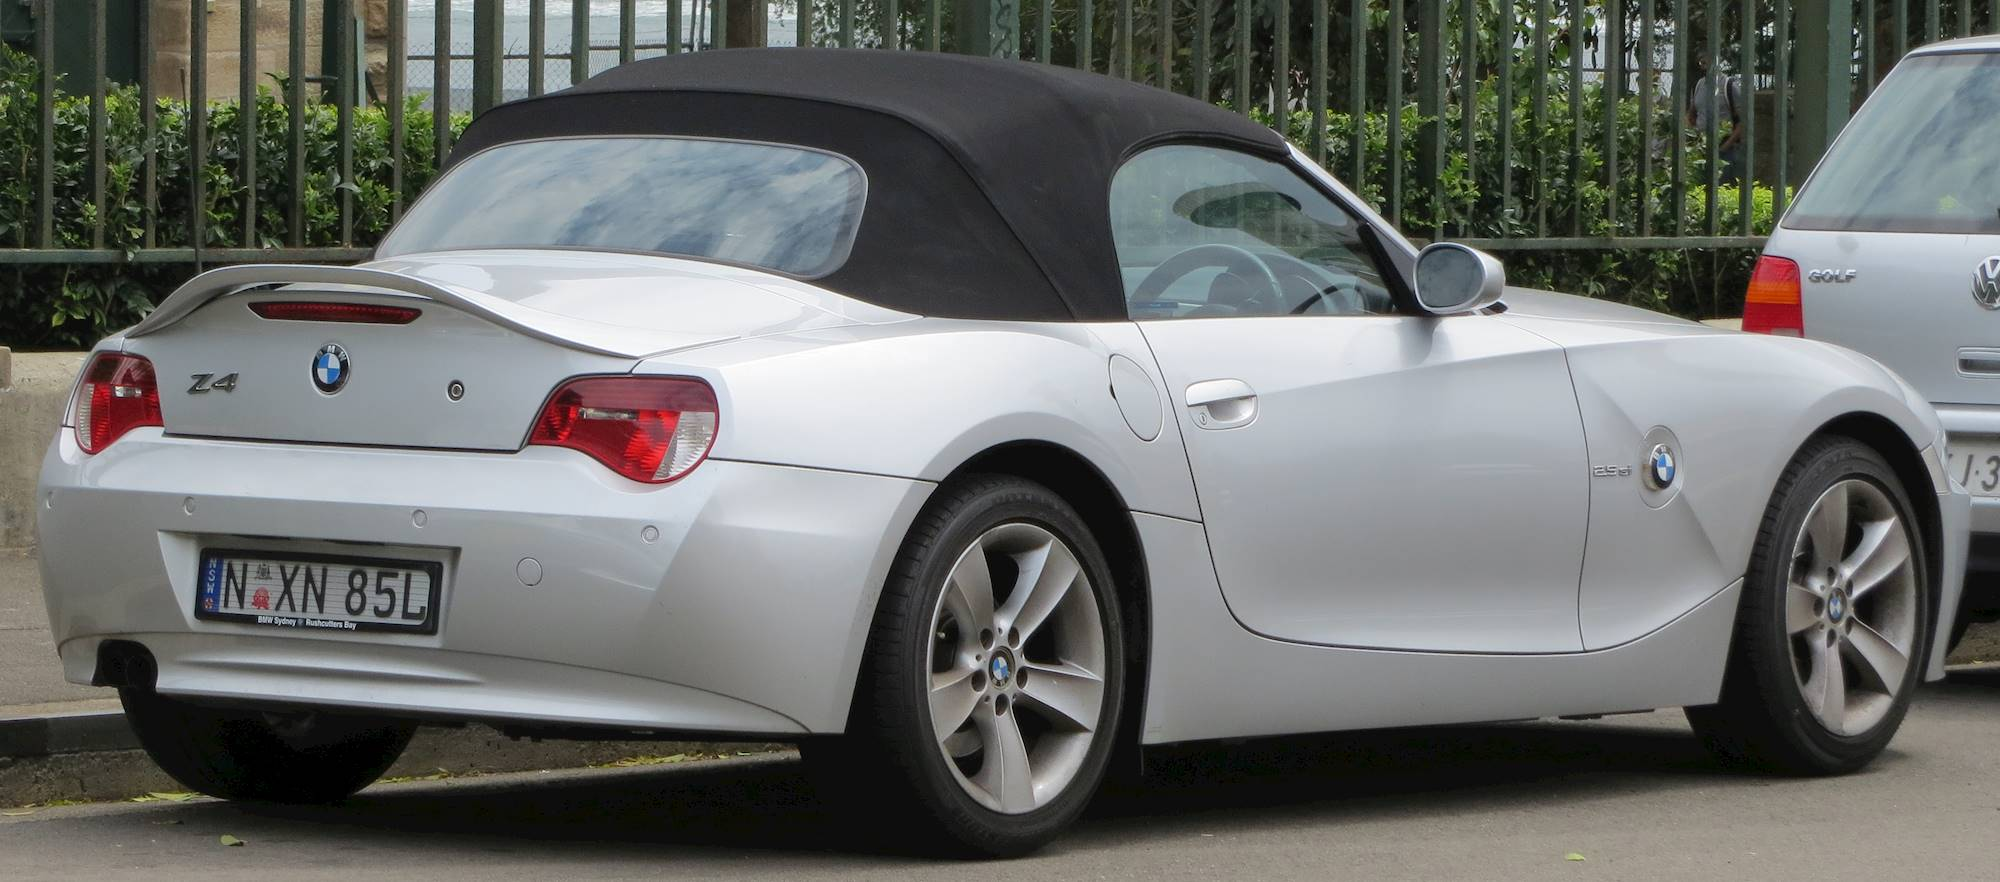 2006 Bmw Z4 M Coupe 3 2l Manual